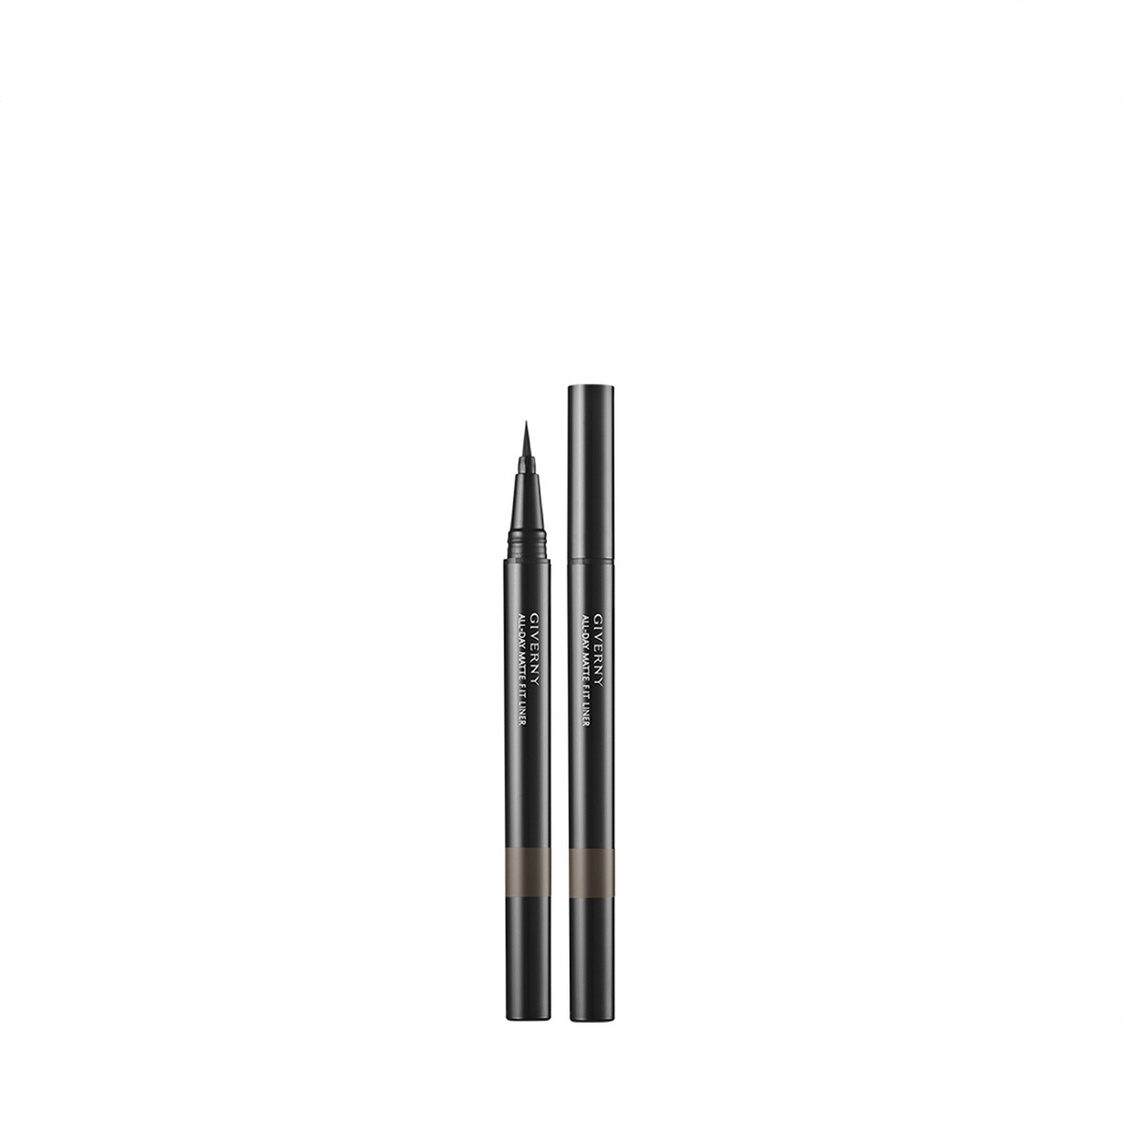 All-Day Matte Fit Liner 02 Brown 04g